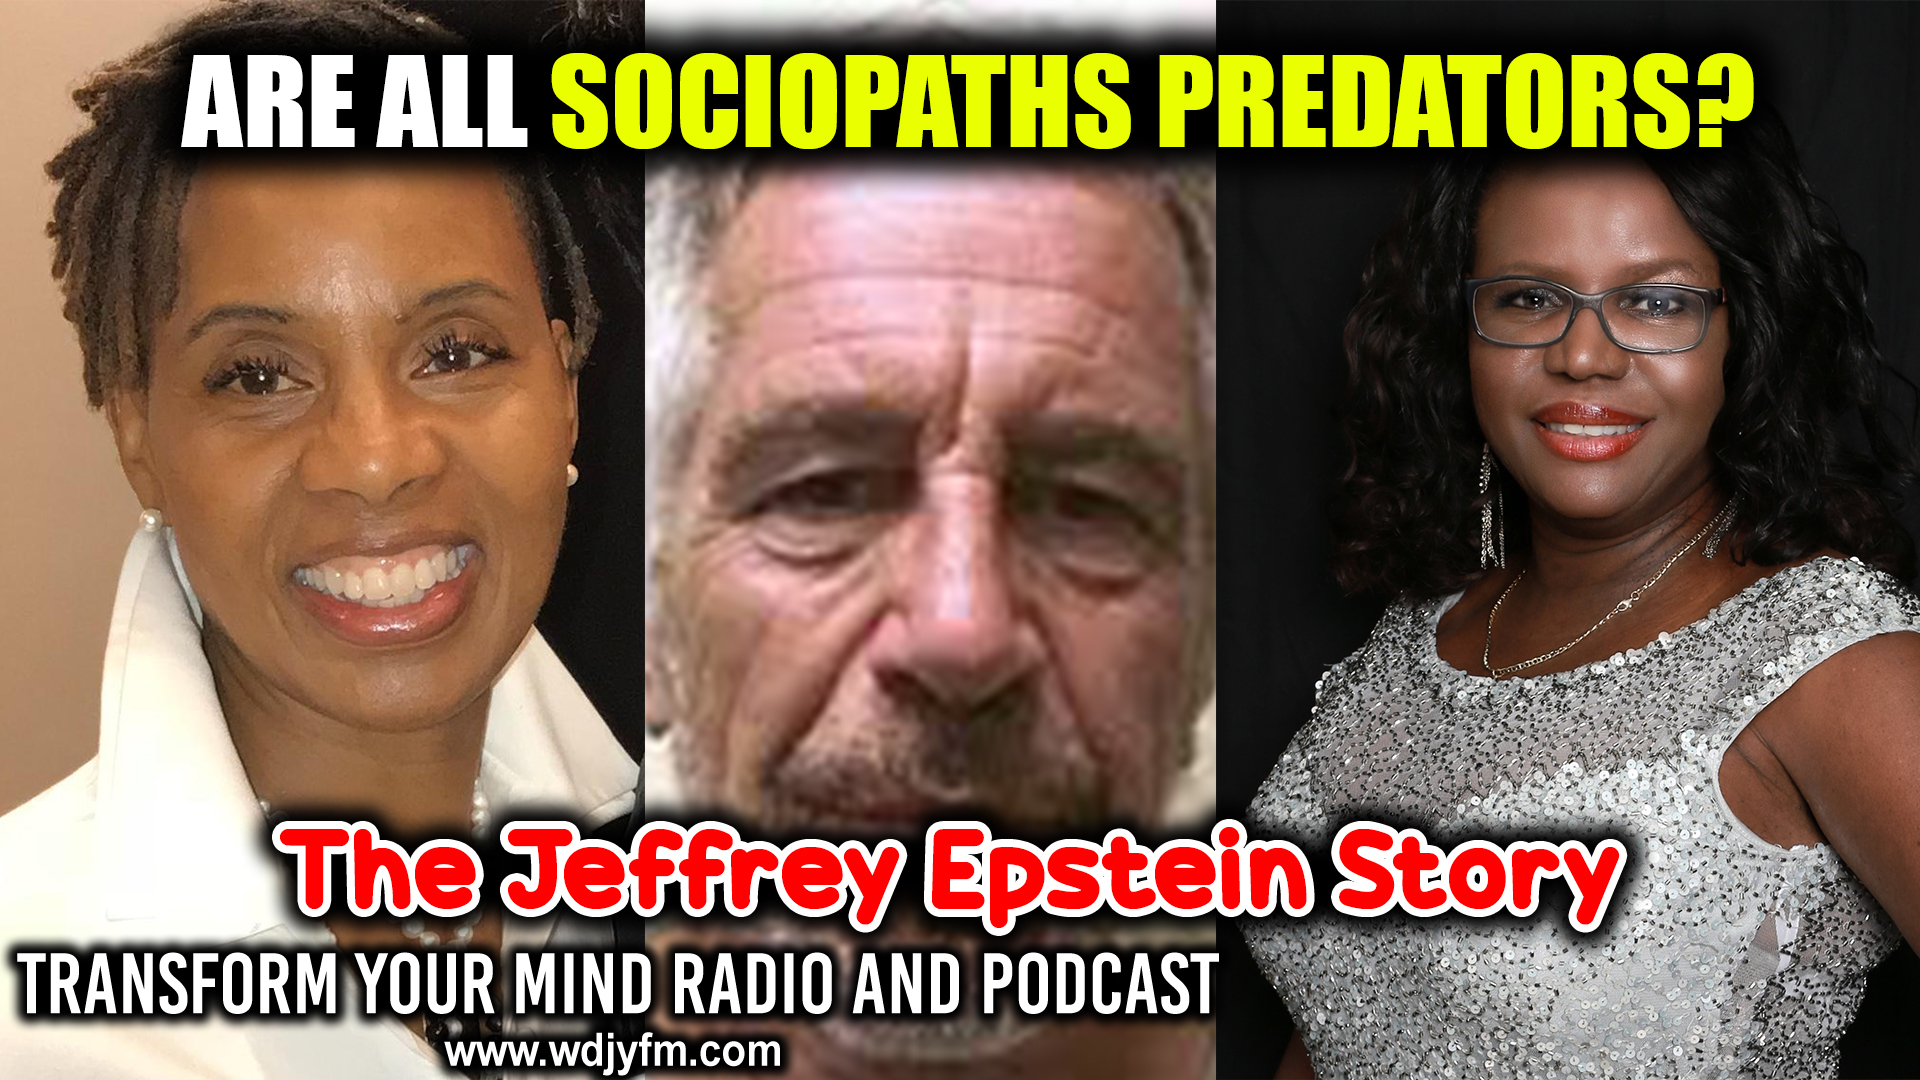 Sociopaths like Jeffrey Epstein